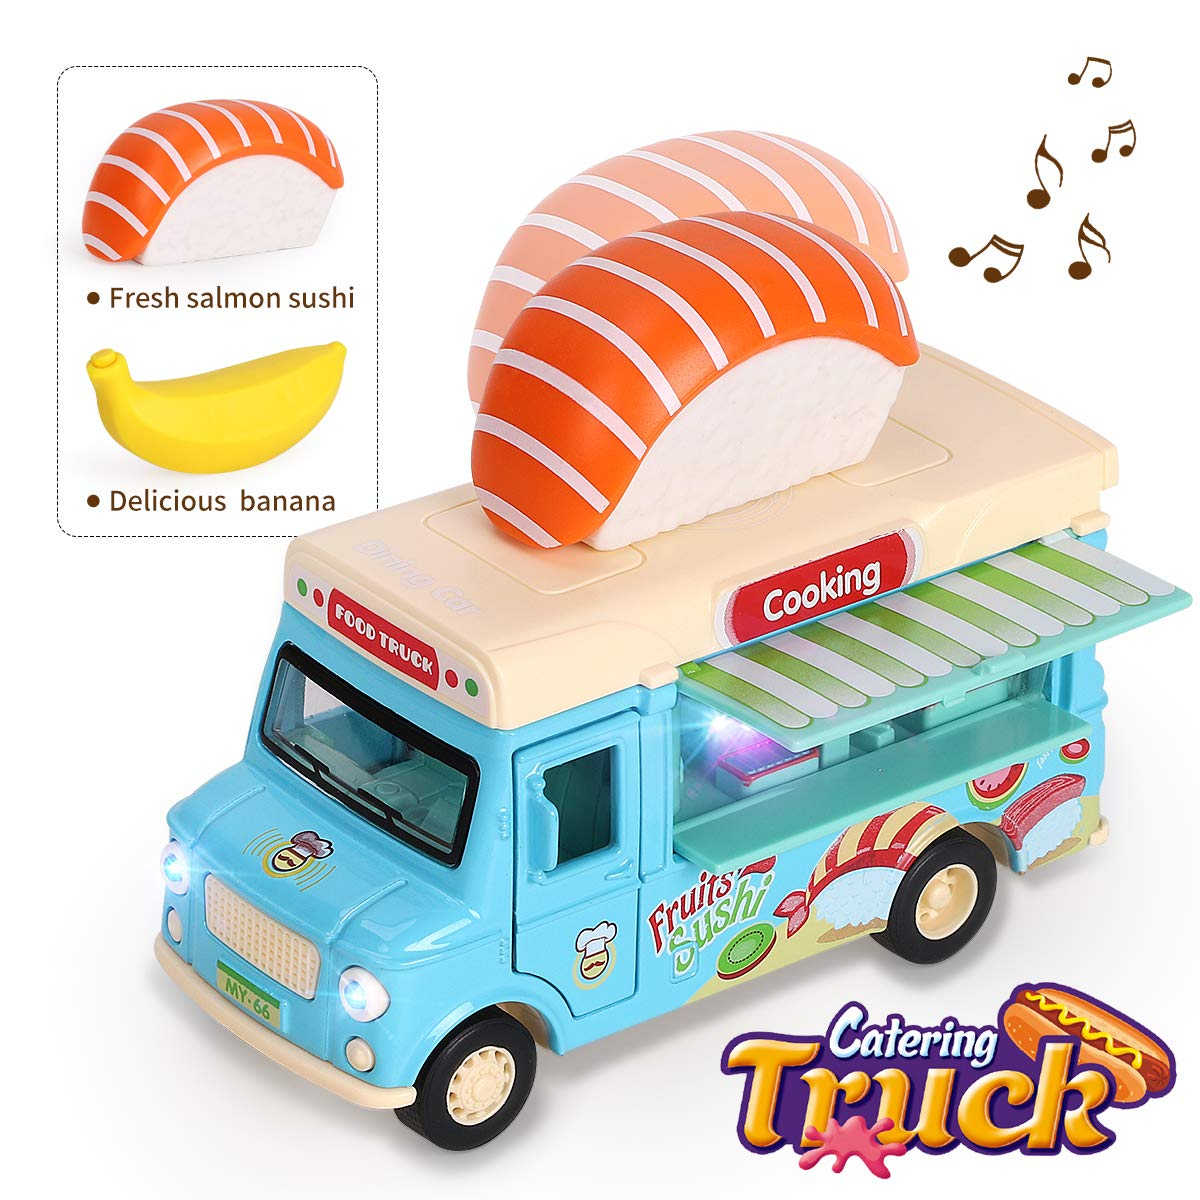 REMOKING Alloy Dining Car Toy, Educational Stem Pull-Back Magnetic Induction Car, 1:36 Scale Die-cast Food Truck Creative Decoration Model with Sounds and Lights, Great Gifts for Children and Adults by REMOKING